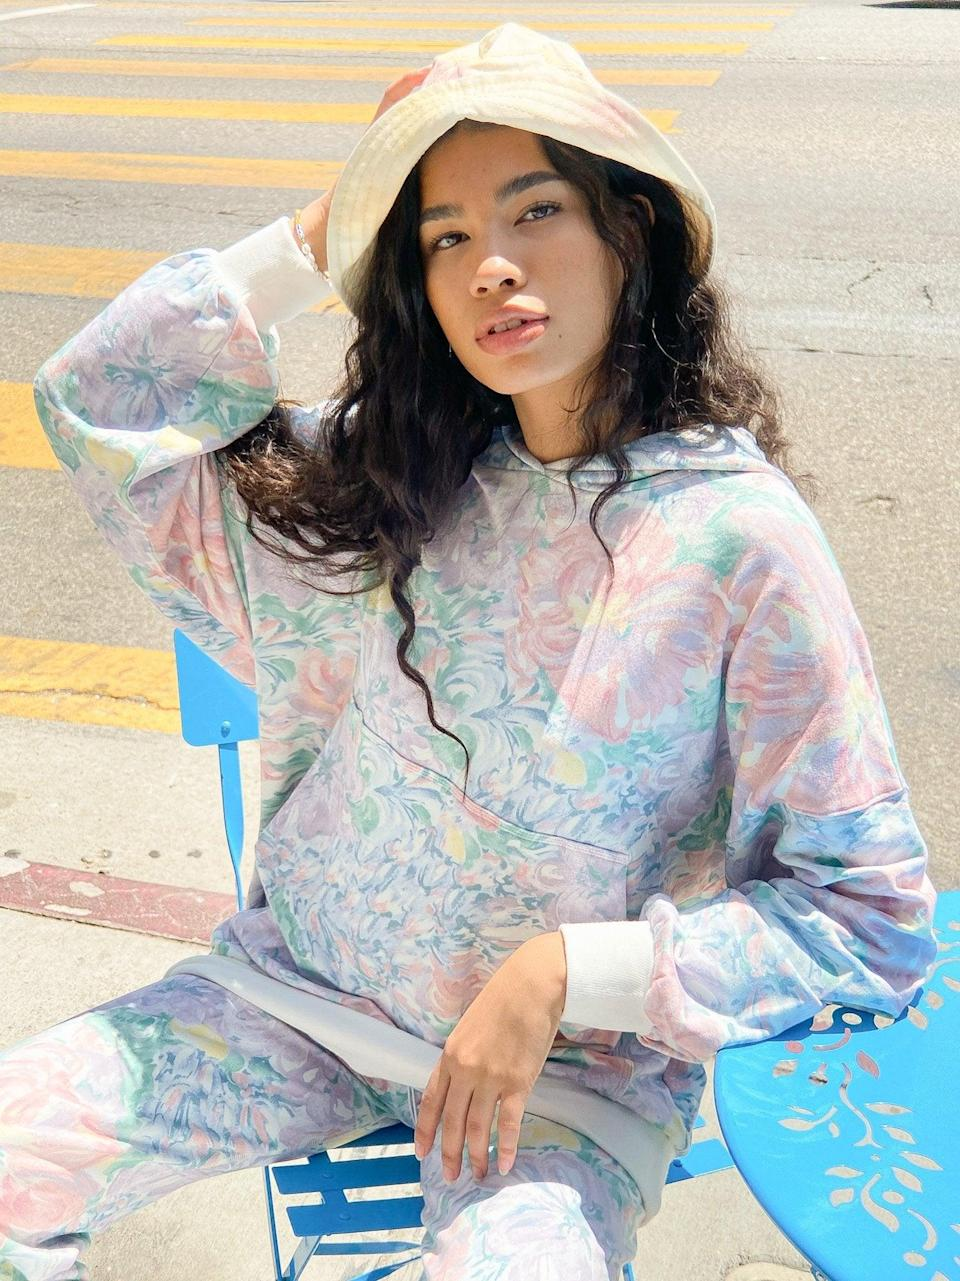 """<br><br><strong>Selkie</strong> The Pillow Hoodie, Lily, $, available at <a href=""""https://go.skimresources.com/?id=30283X879131&url=https%3A%2F%2Flisasaysgah.com%2Fcollections%2F30-off-tops%2Fproducts%2Fthe-pillow-hoodie-lily"""" rel=""""nofollow noopener"""" target=""""_blank"""" data-ylk=""""slk:Lisa Says Gah"""" class=""""link rapid-noclick-resp"""">Lisa Says Gah</a>"""